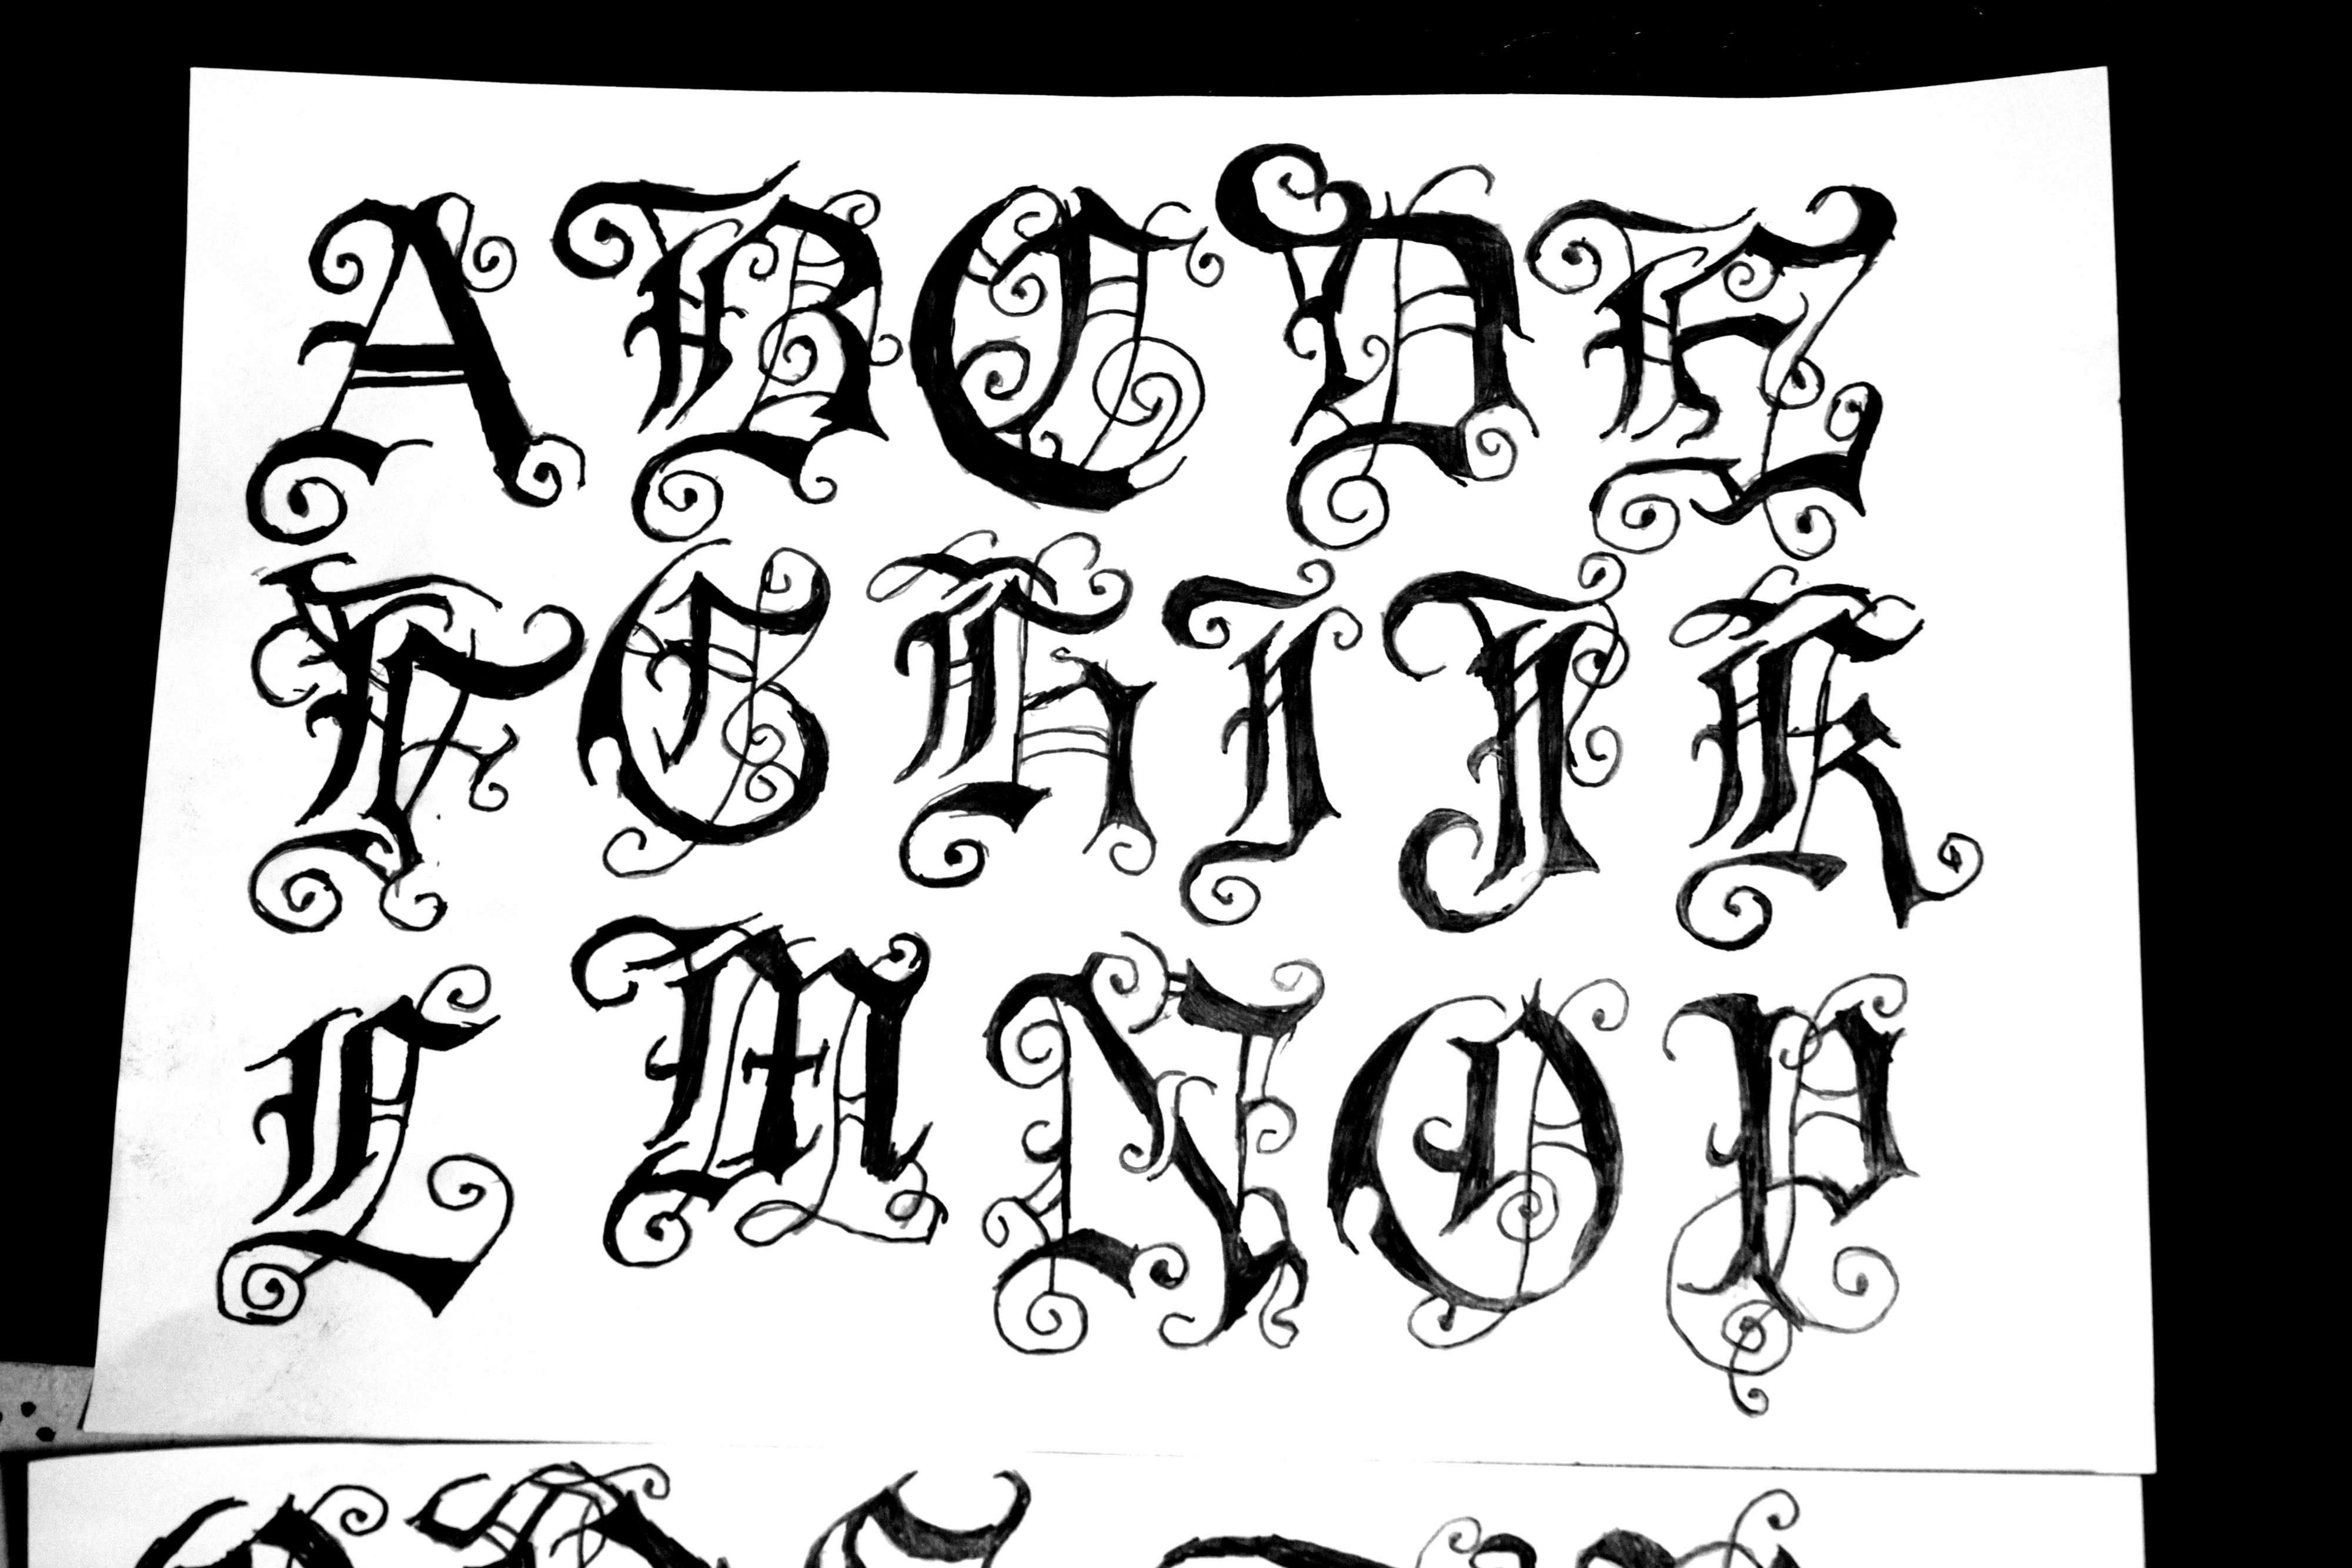 What Most People Think A Gothic Font Looks Like